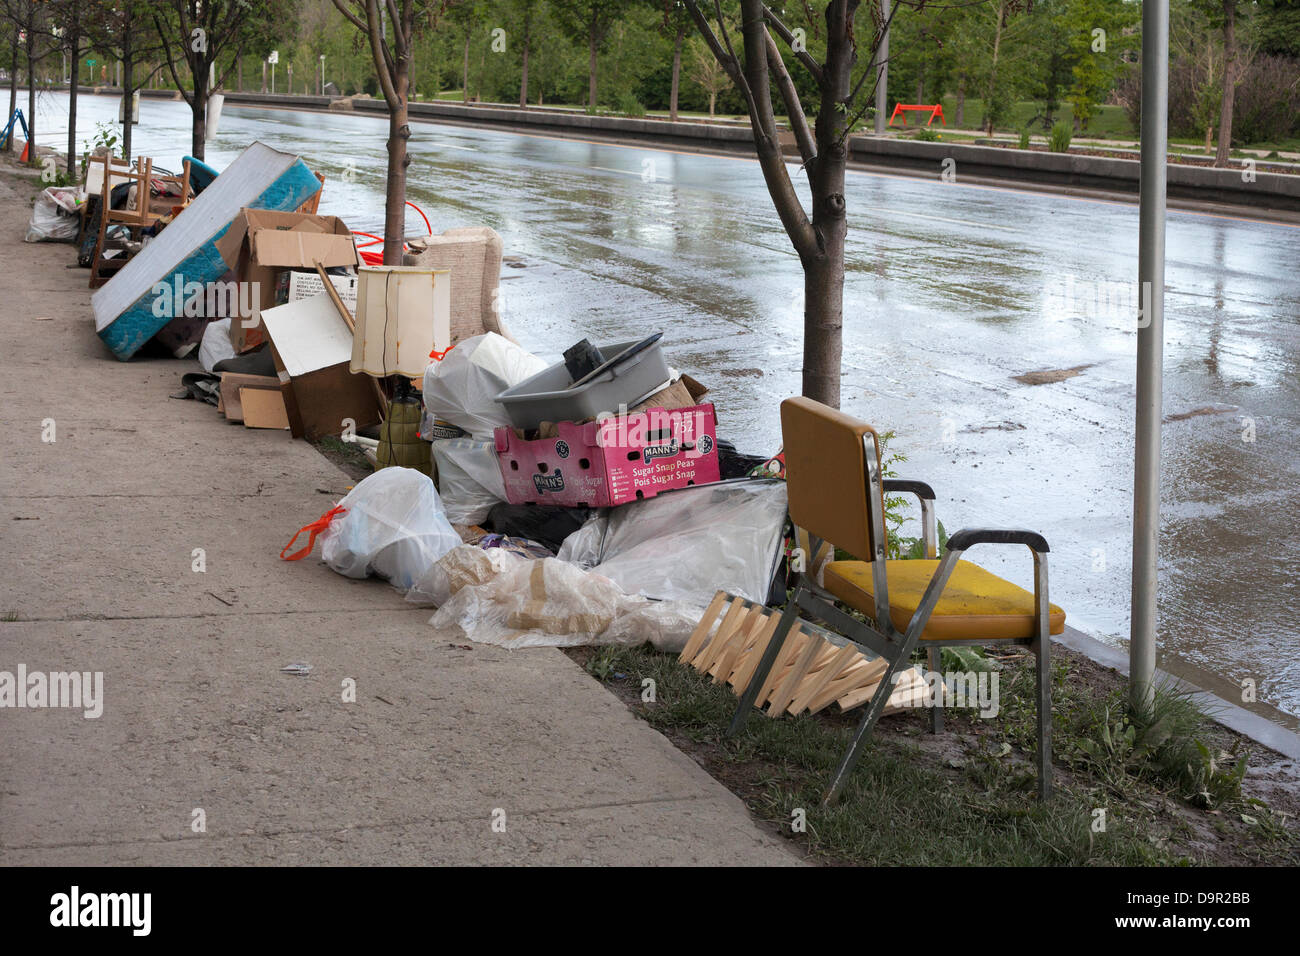 Waterlogged household items pile up along Memorial Drive as cleanup begins after floodwaters recede from the Sunnyside Stock Photo